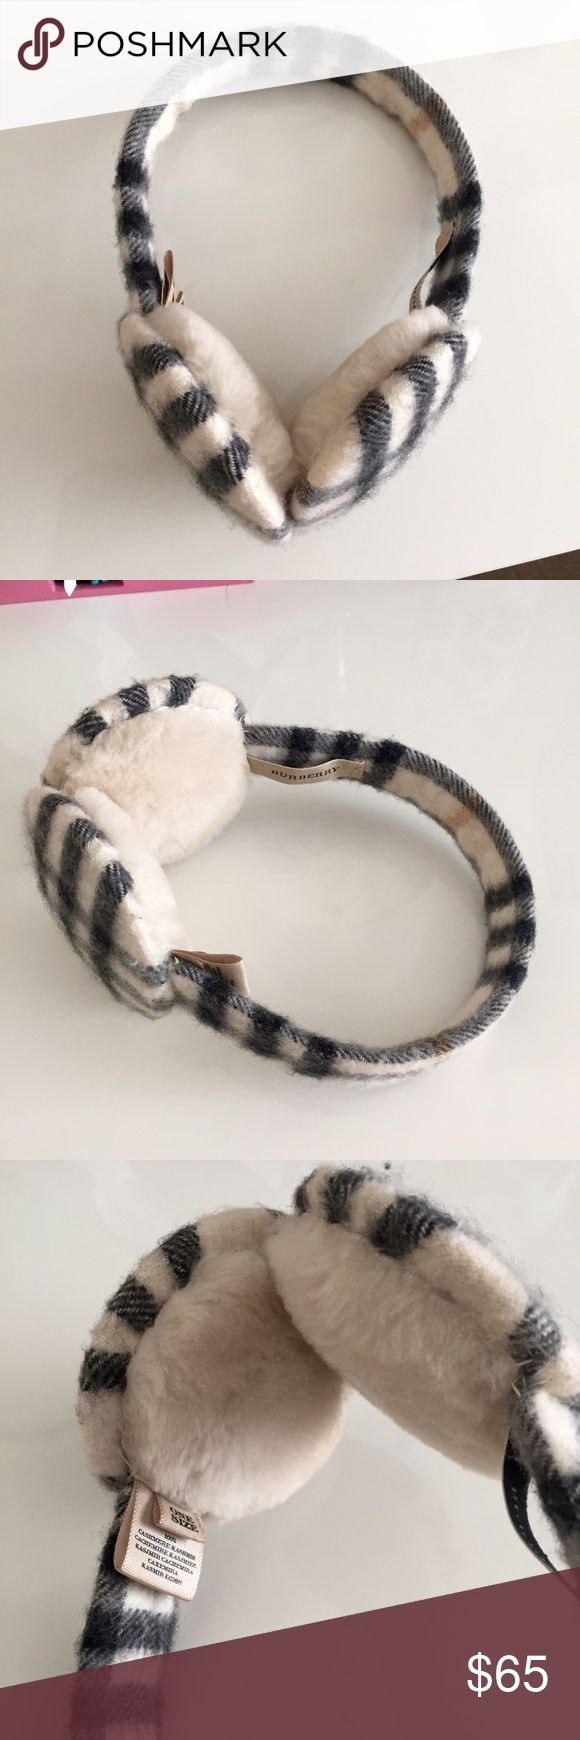 Burberry Cashmere Ear Muffs 100% Authentic Burberry Cashmere Ear Muffs. EUC-used once. Very warm and chic. Price is firm. Burberry Accessories Gloves & Mittens